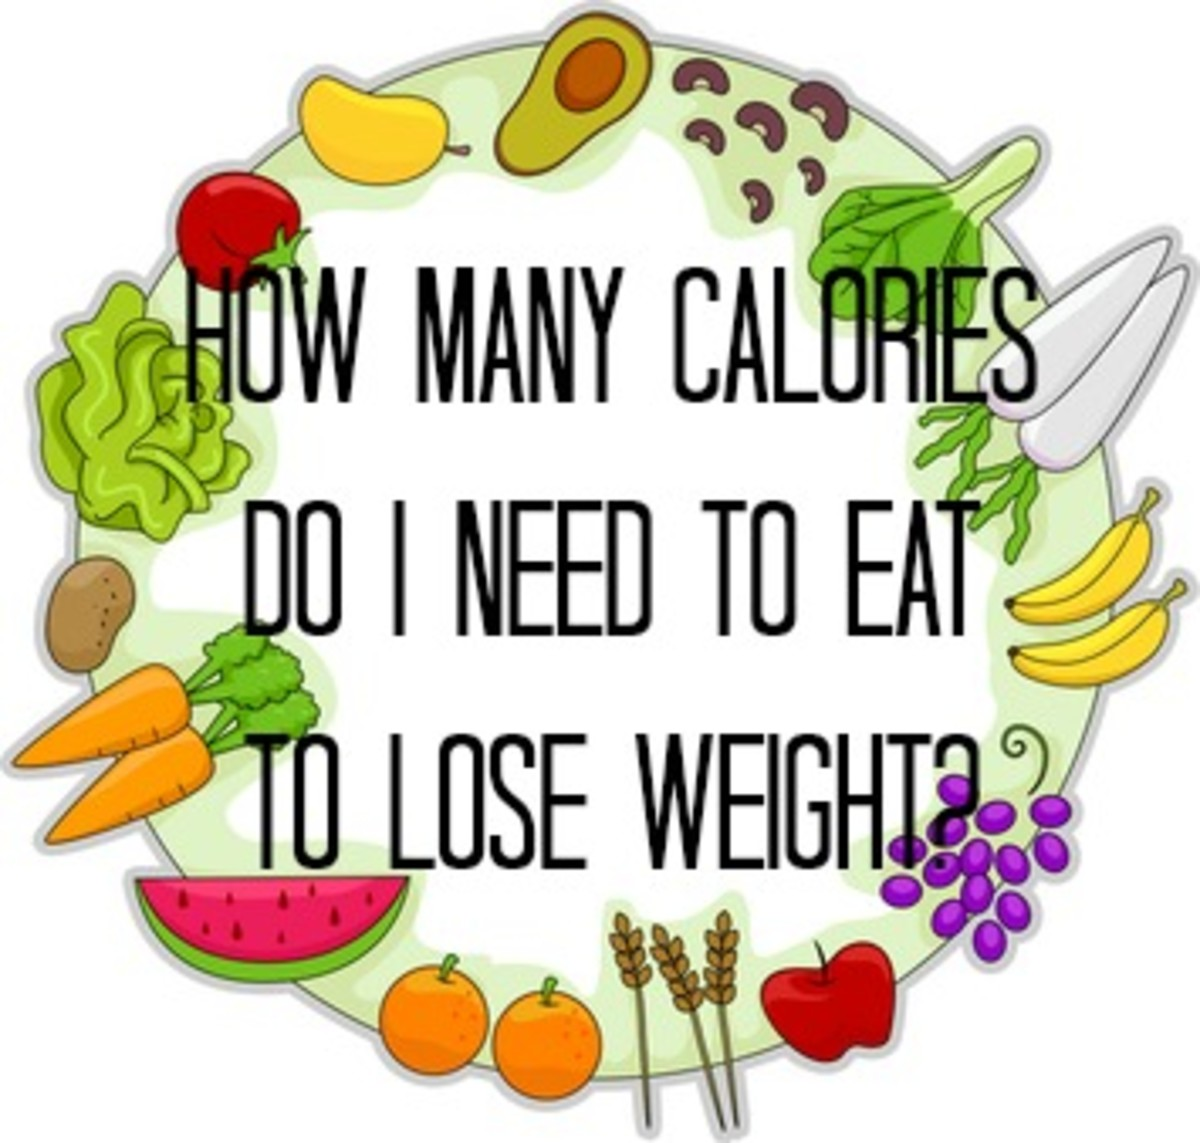 How many Calories does your Body need?